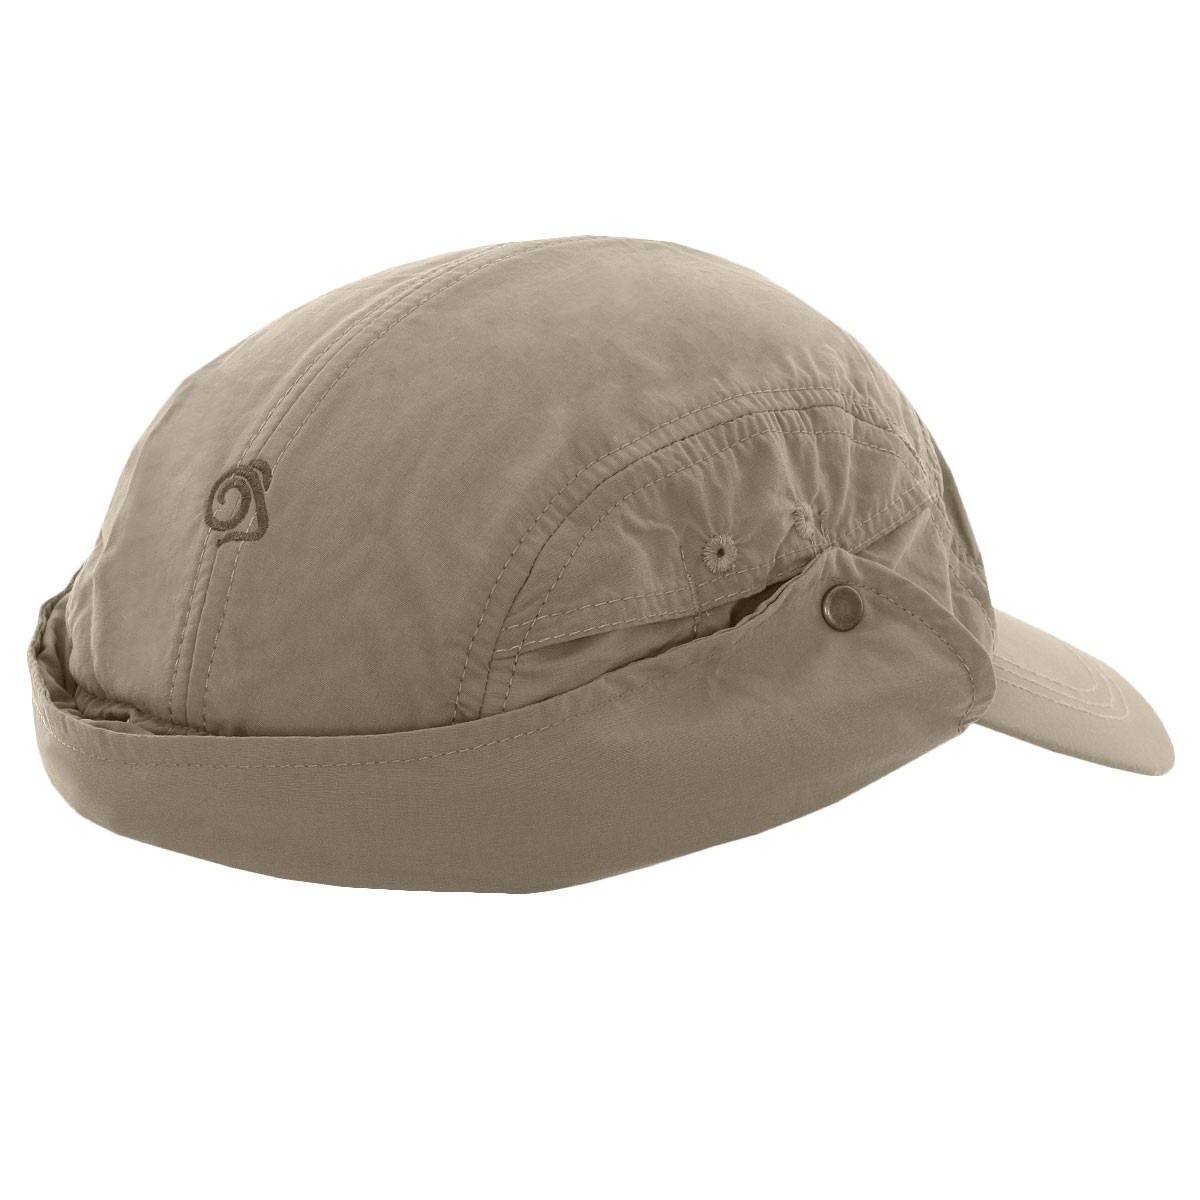 b680f71440c Craghoppers Mens NosiLife Desert Hat - Headwear - Men - Chill